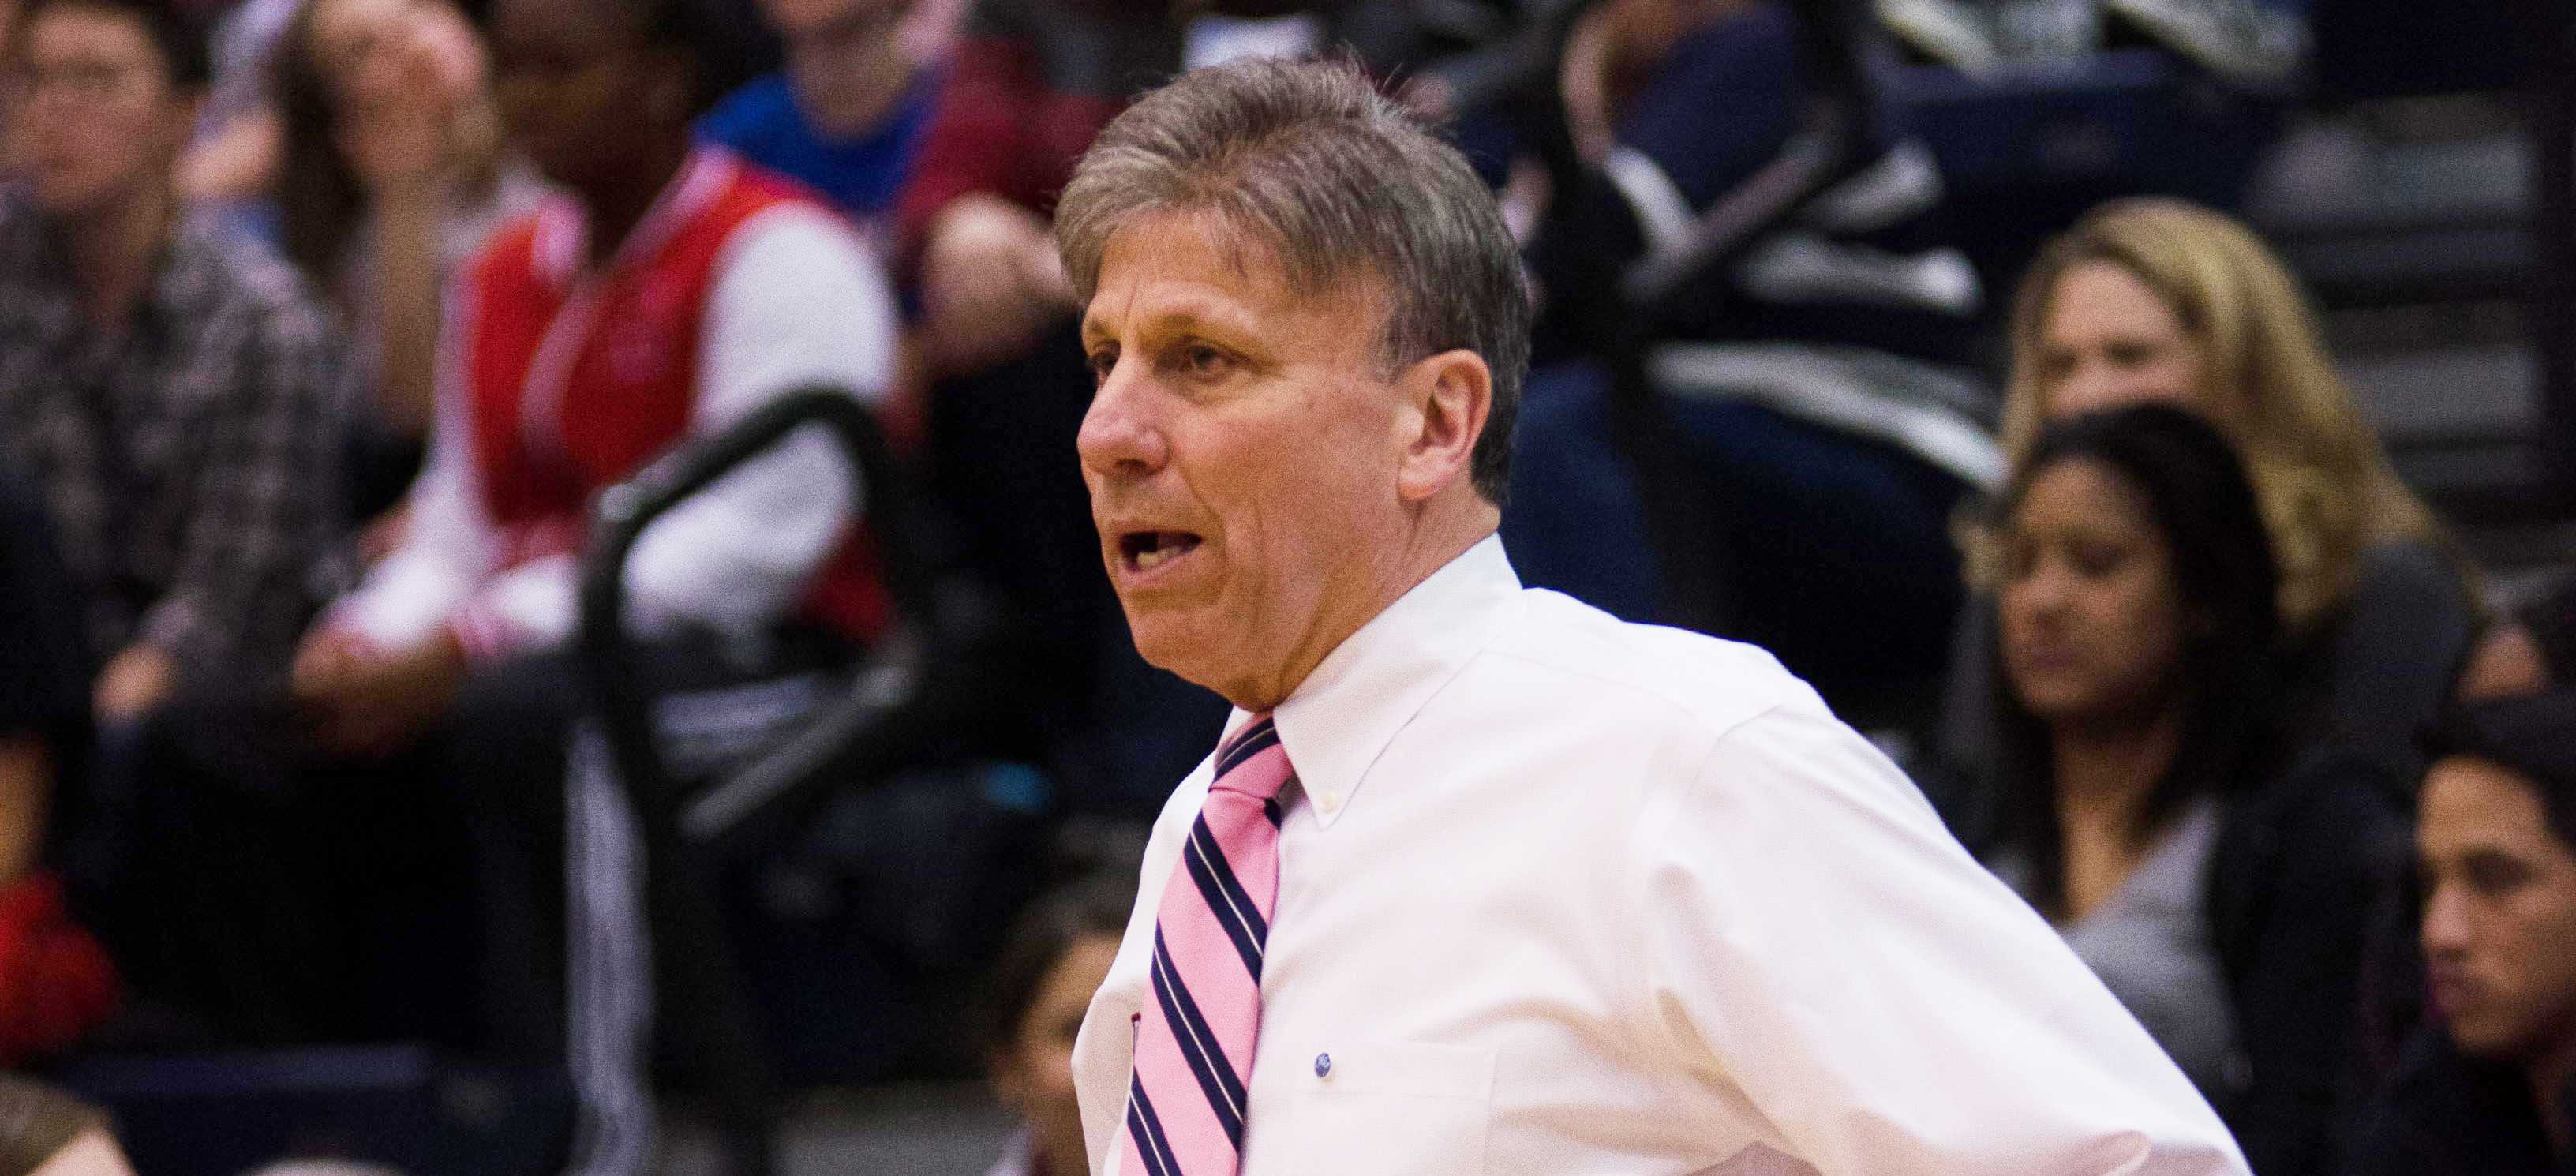 DePaul head coach Doug Bruno has led the Blue Demons to third Big East Tournament titles in the last five seasons.  (Photo Courtesy of DePaul Athletics)